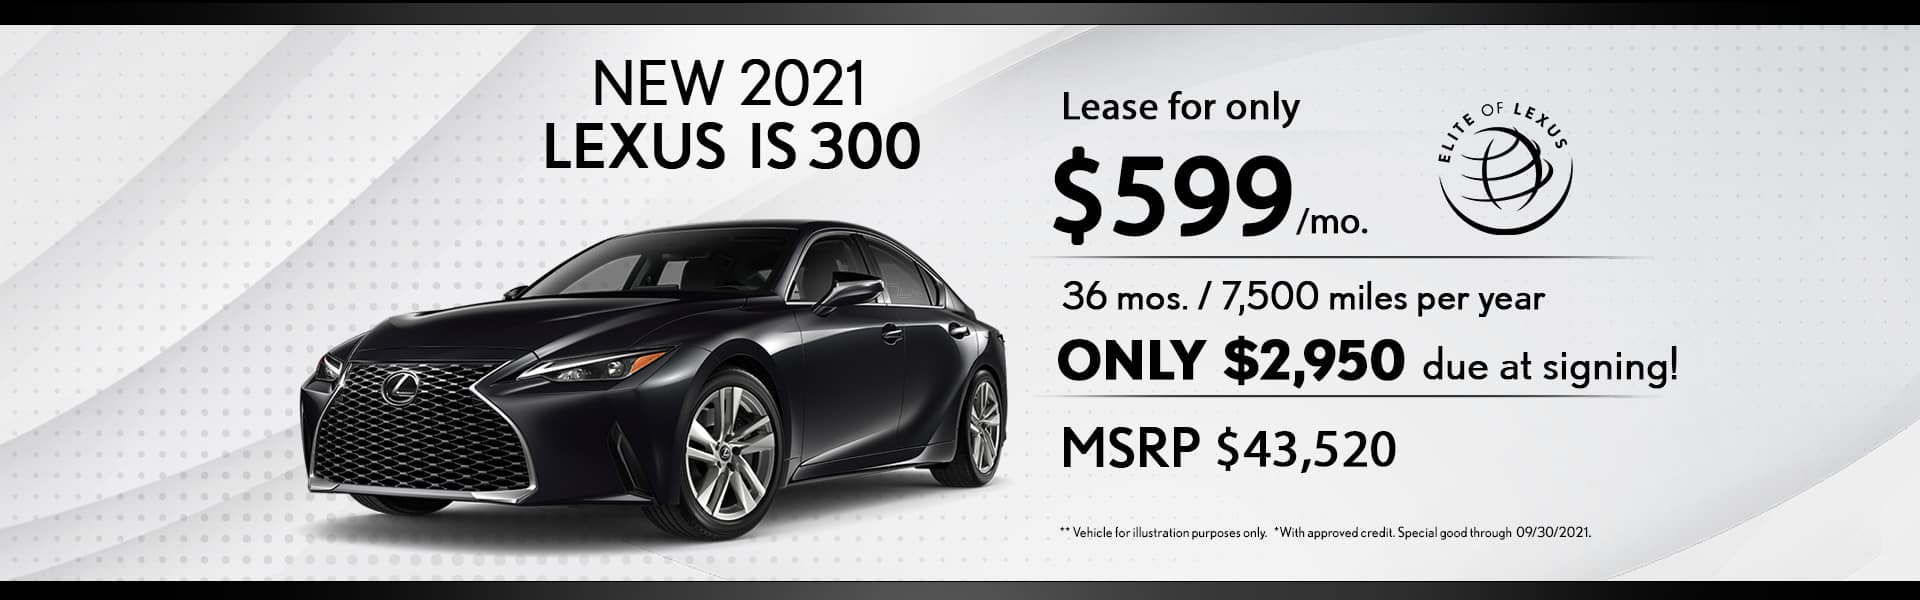 Lexus Lease special IS 300